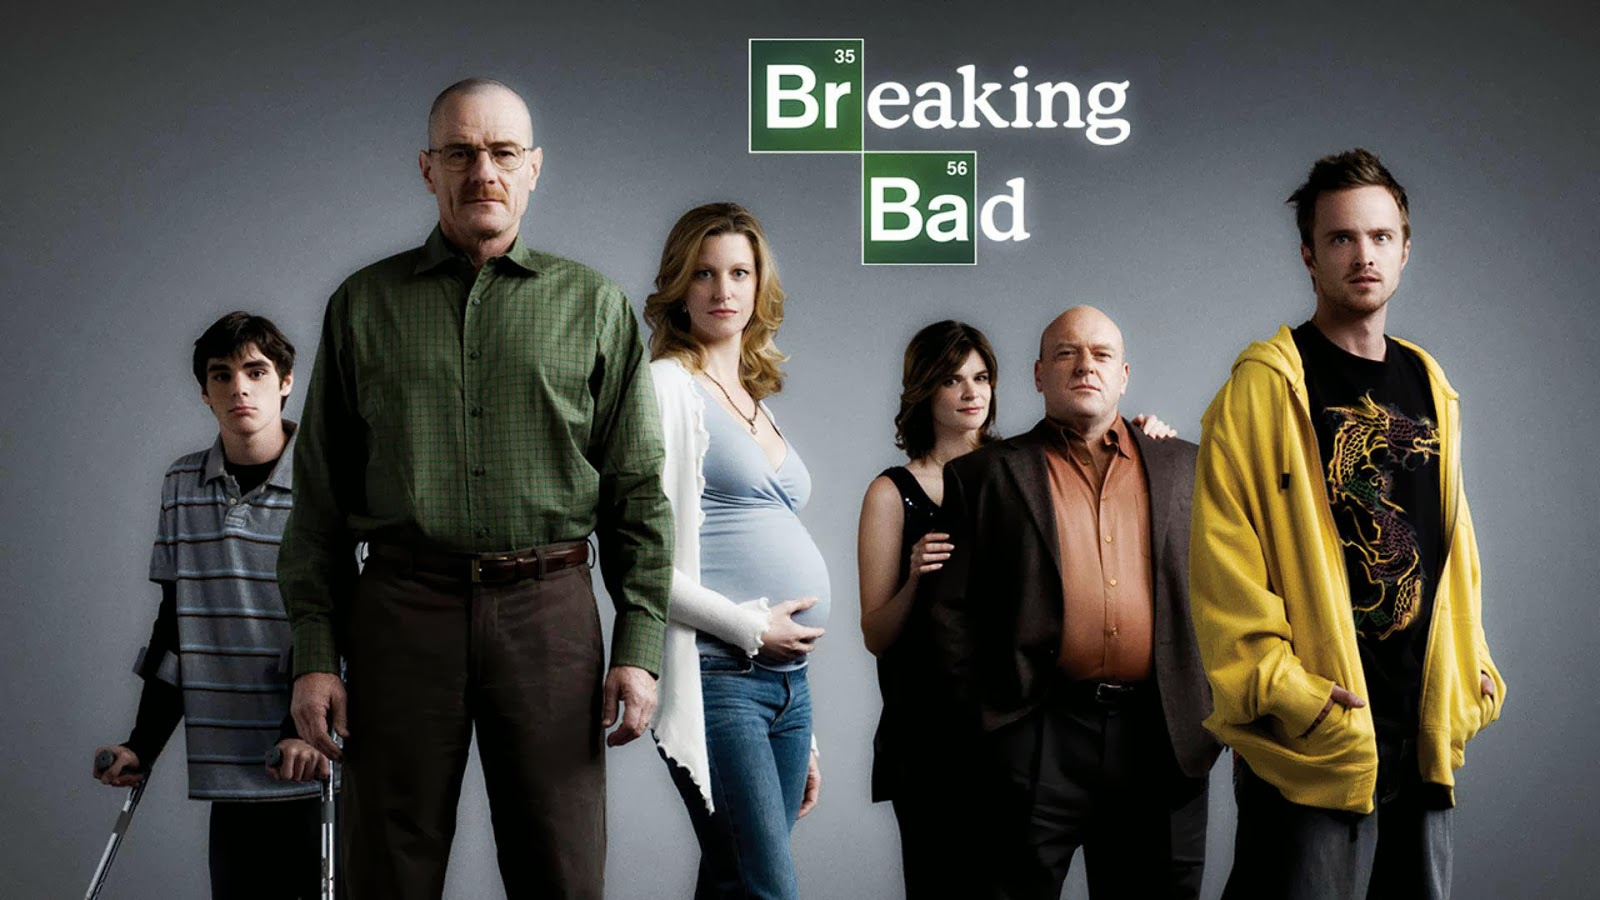 breaking bad 50 wallpapers - photo #28